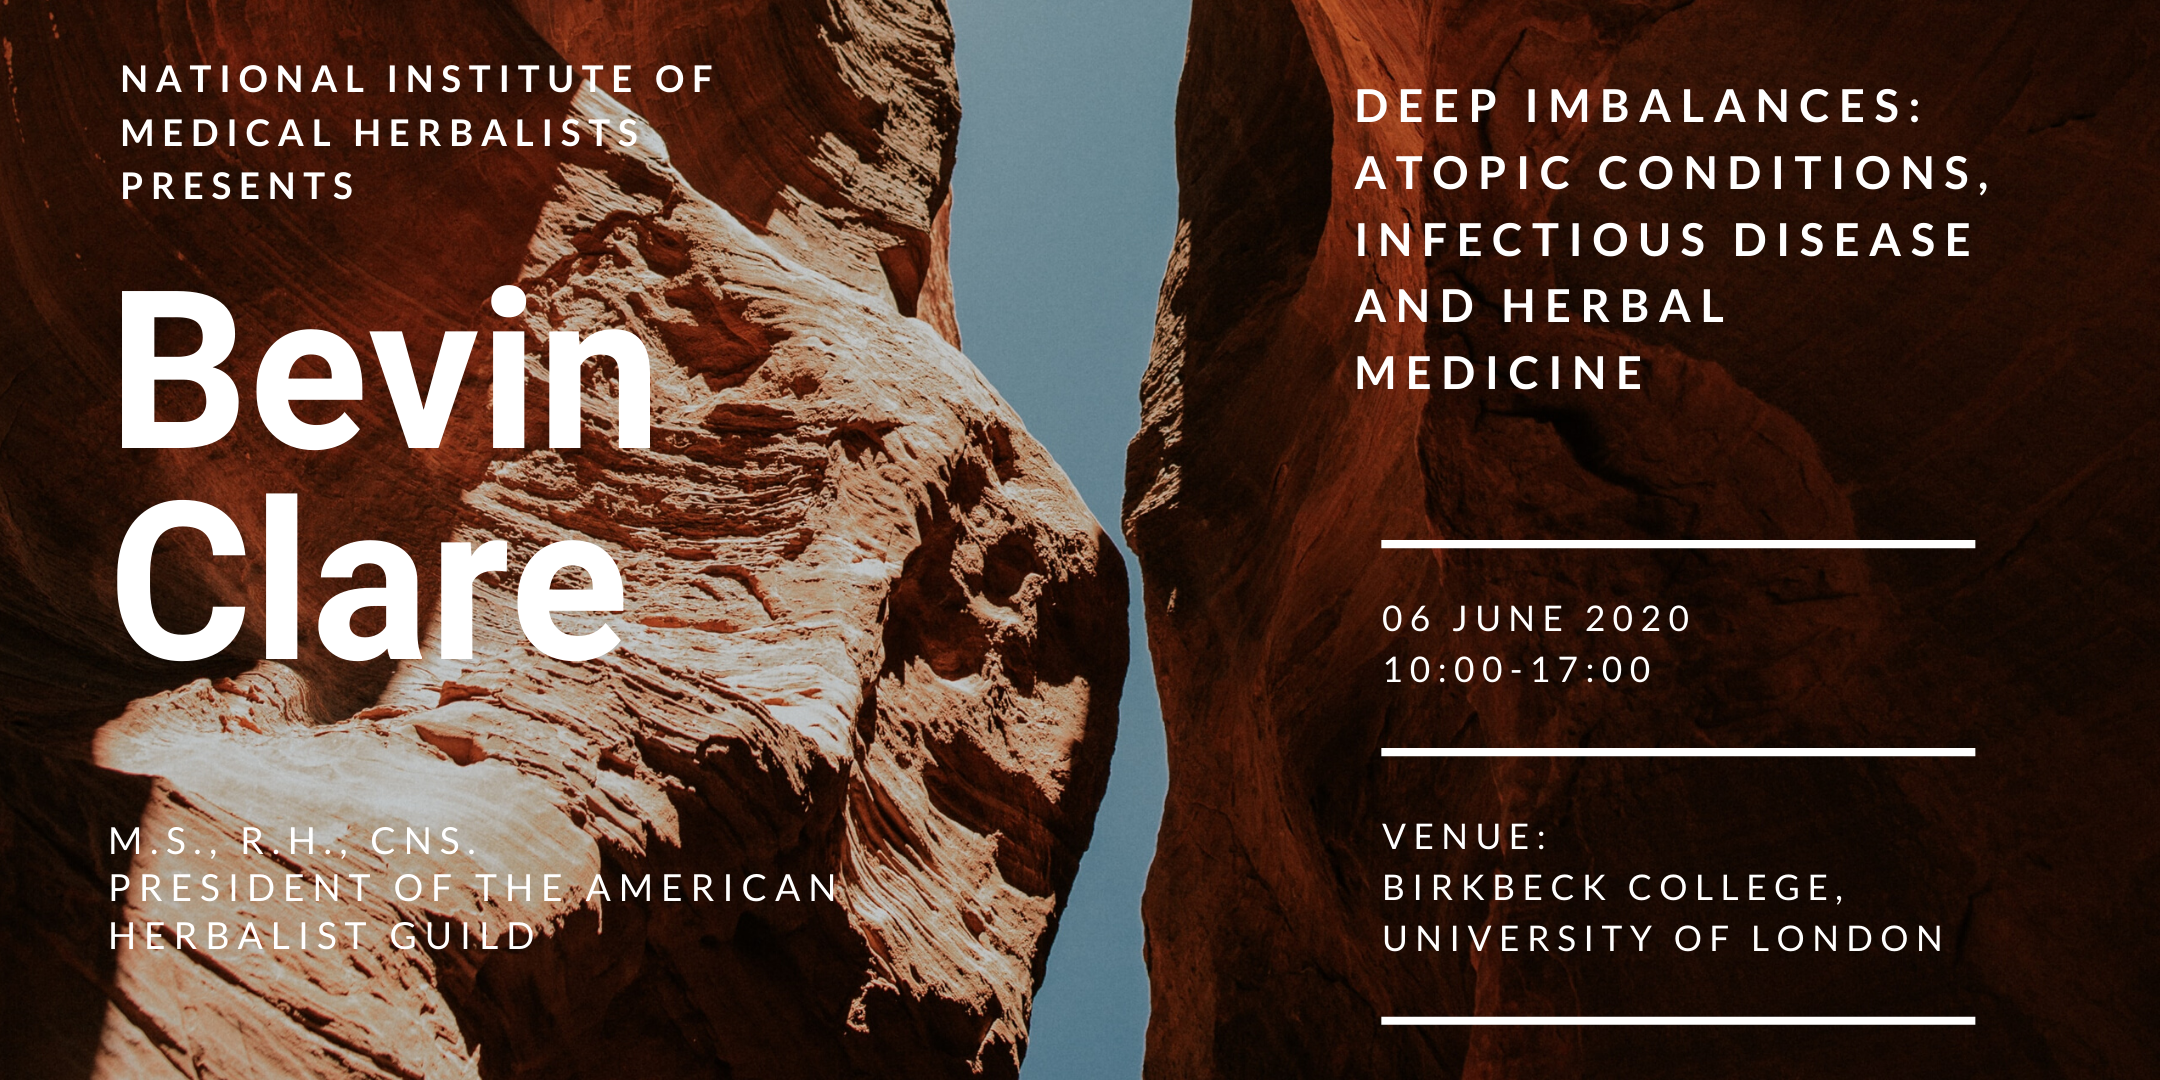 Deep Imbalances: Atopic conditions, infectious disease and herbal medicine